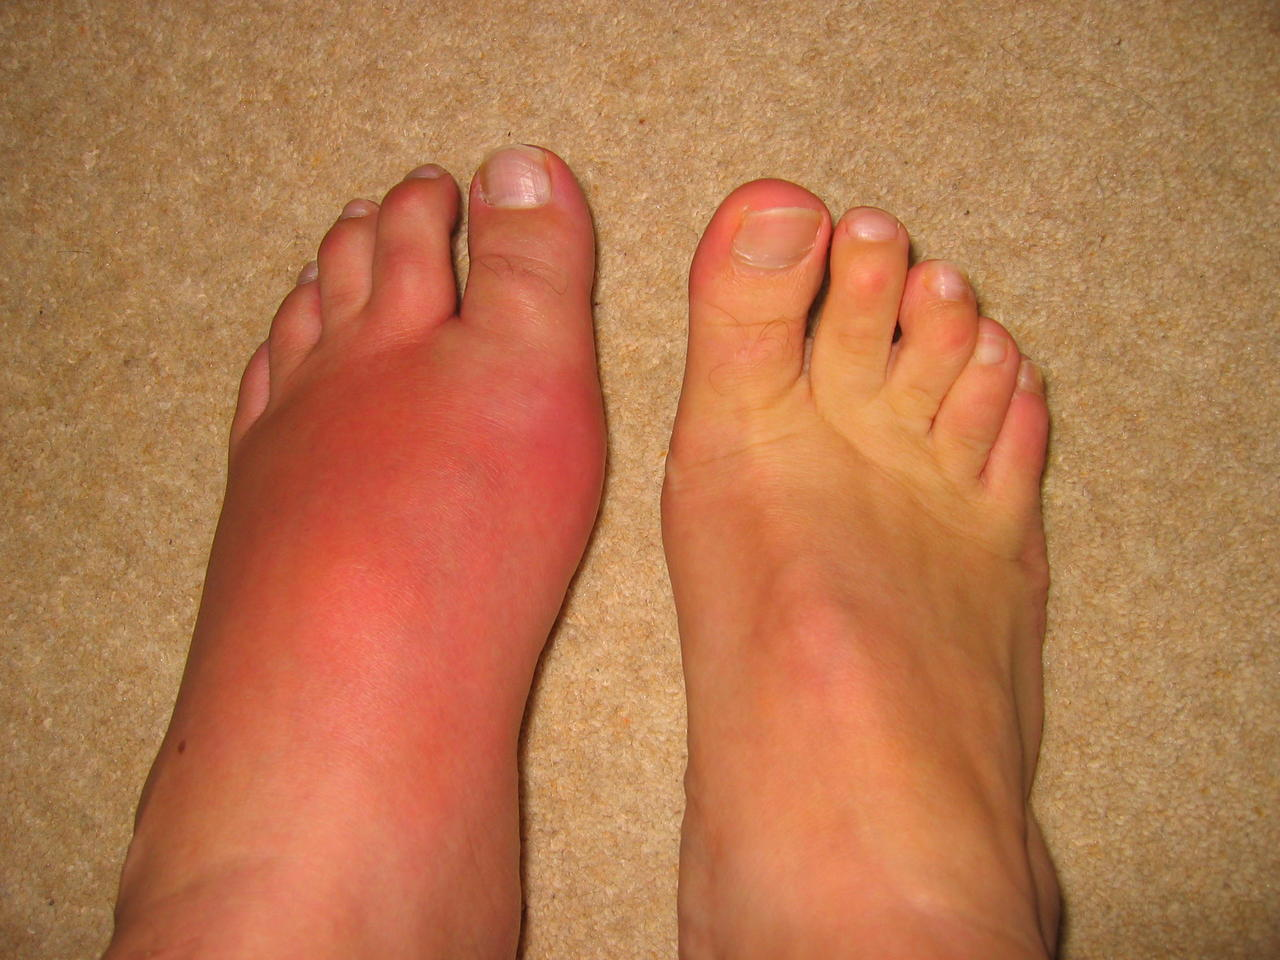 swollen foot due to gout